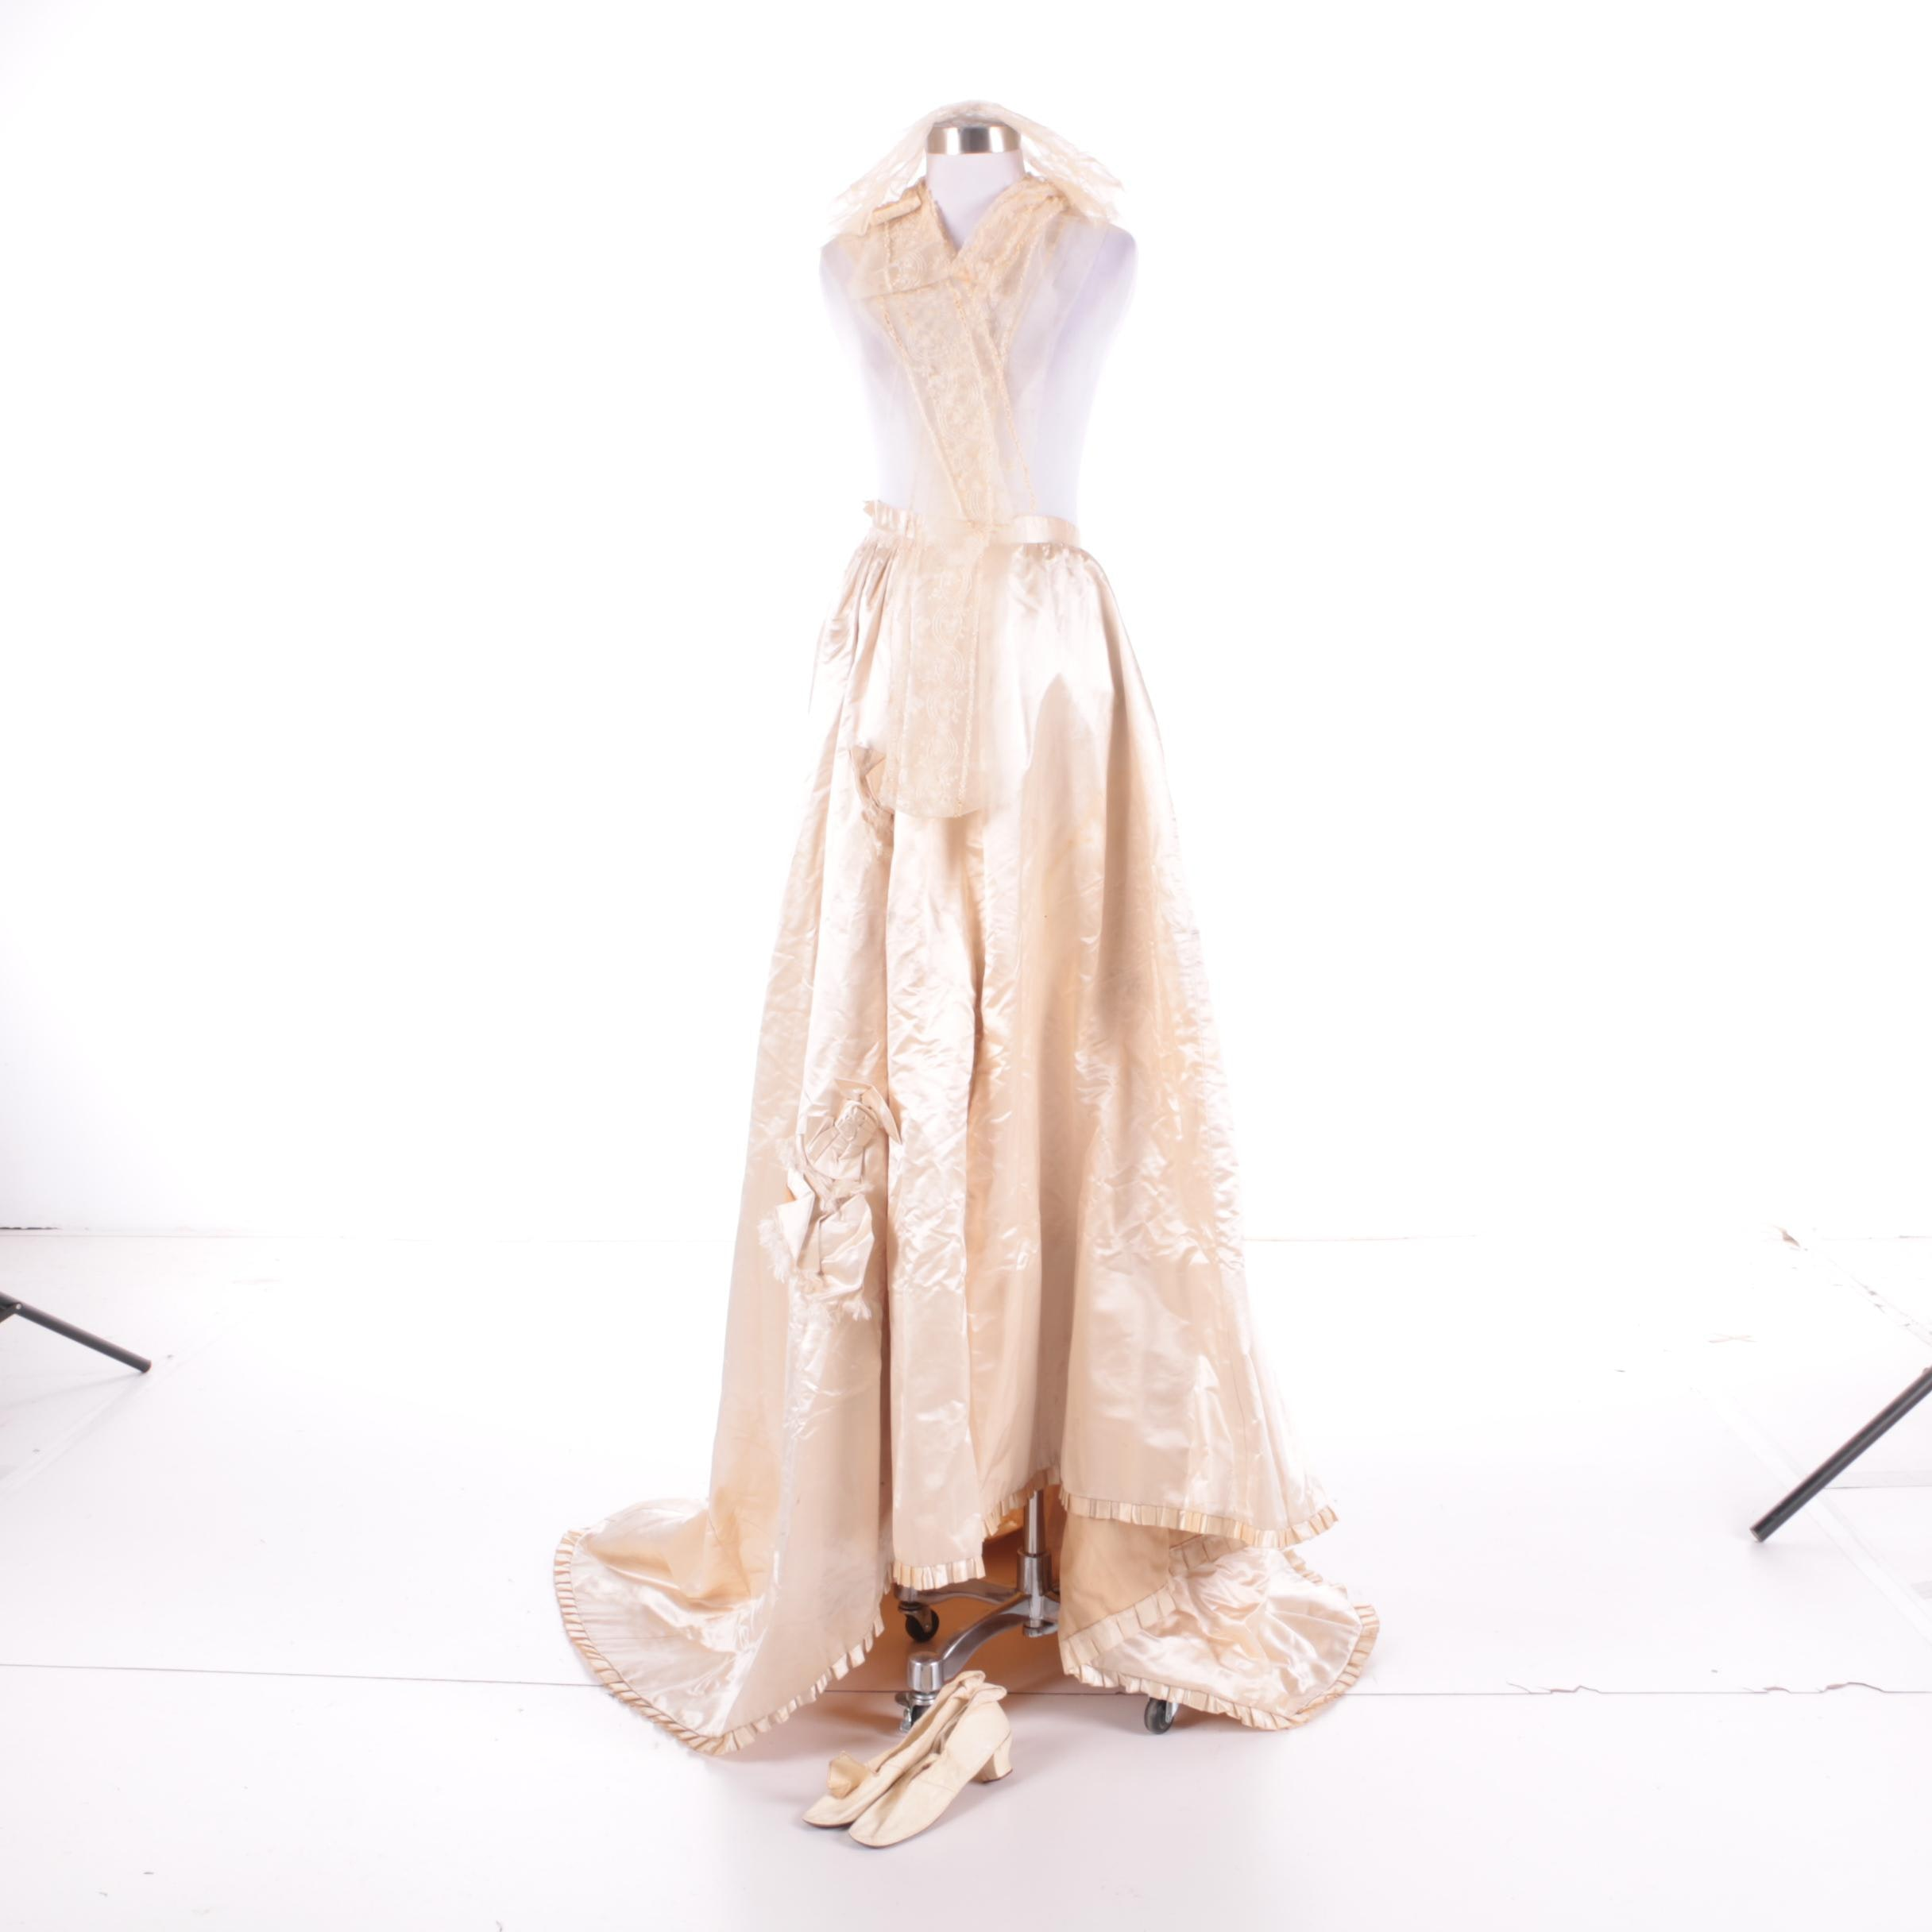 Circa 1870 Antique Wedding Skirt, Lace Veil Pieces and Shoes